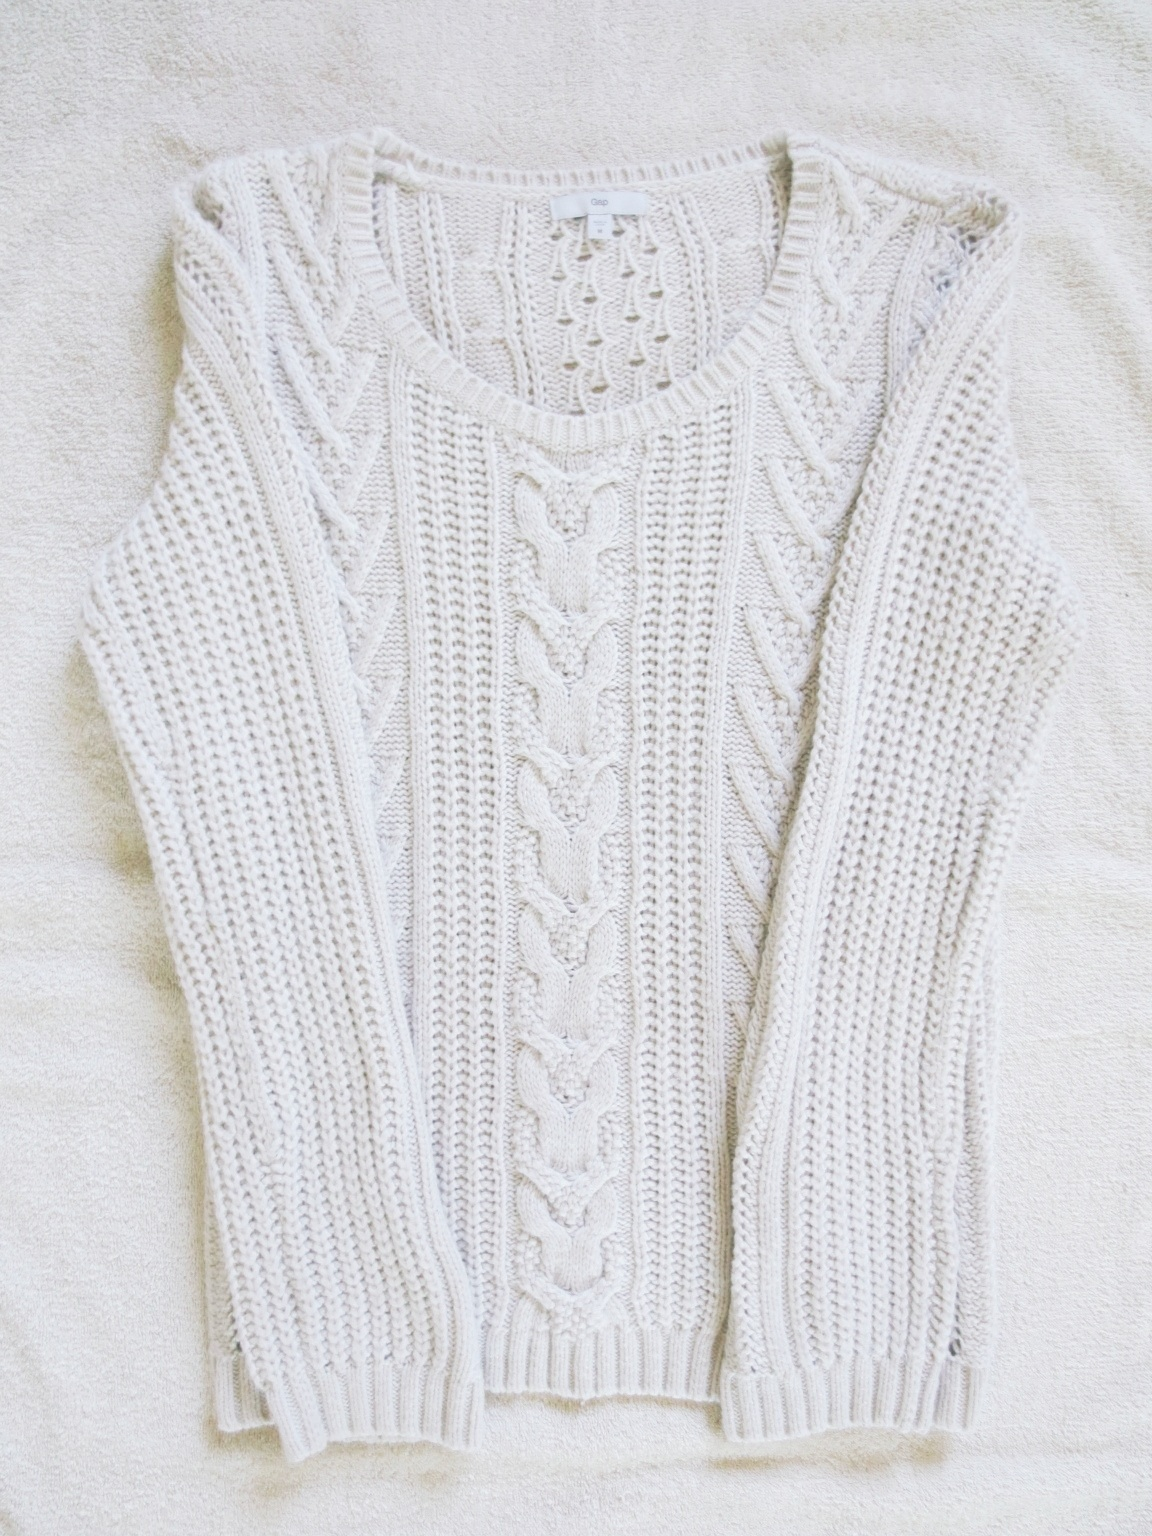 Chunky knit white sweater on Storenvy